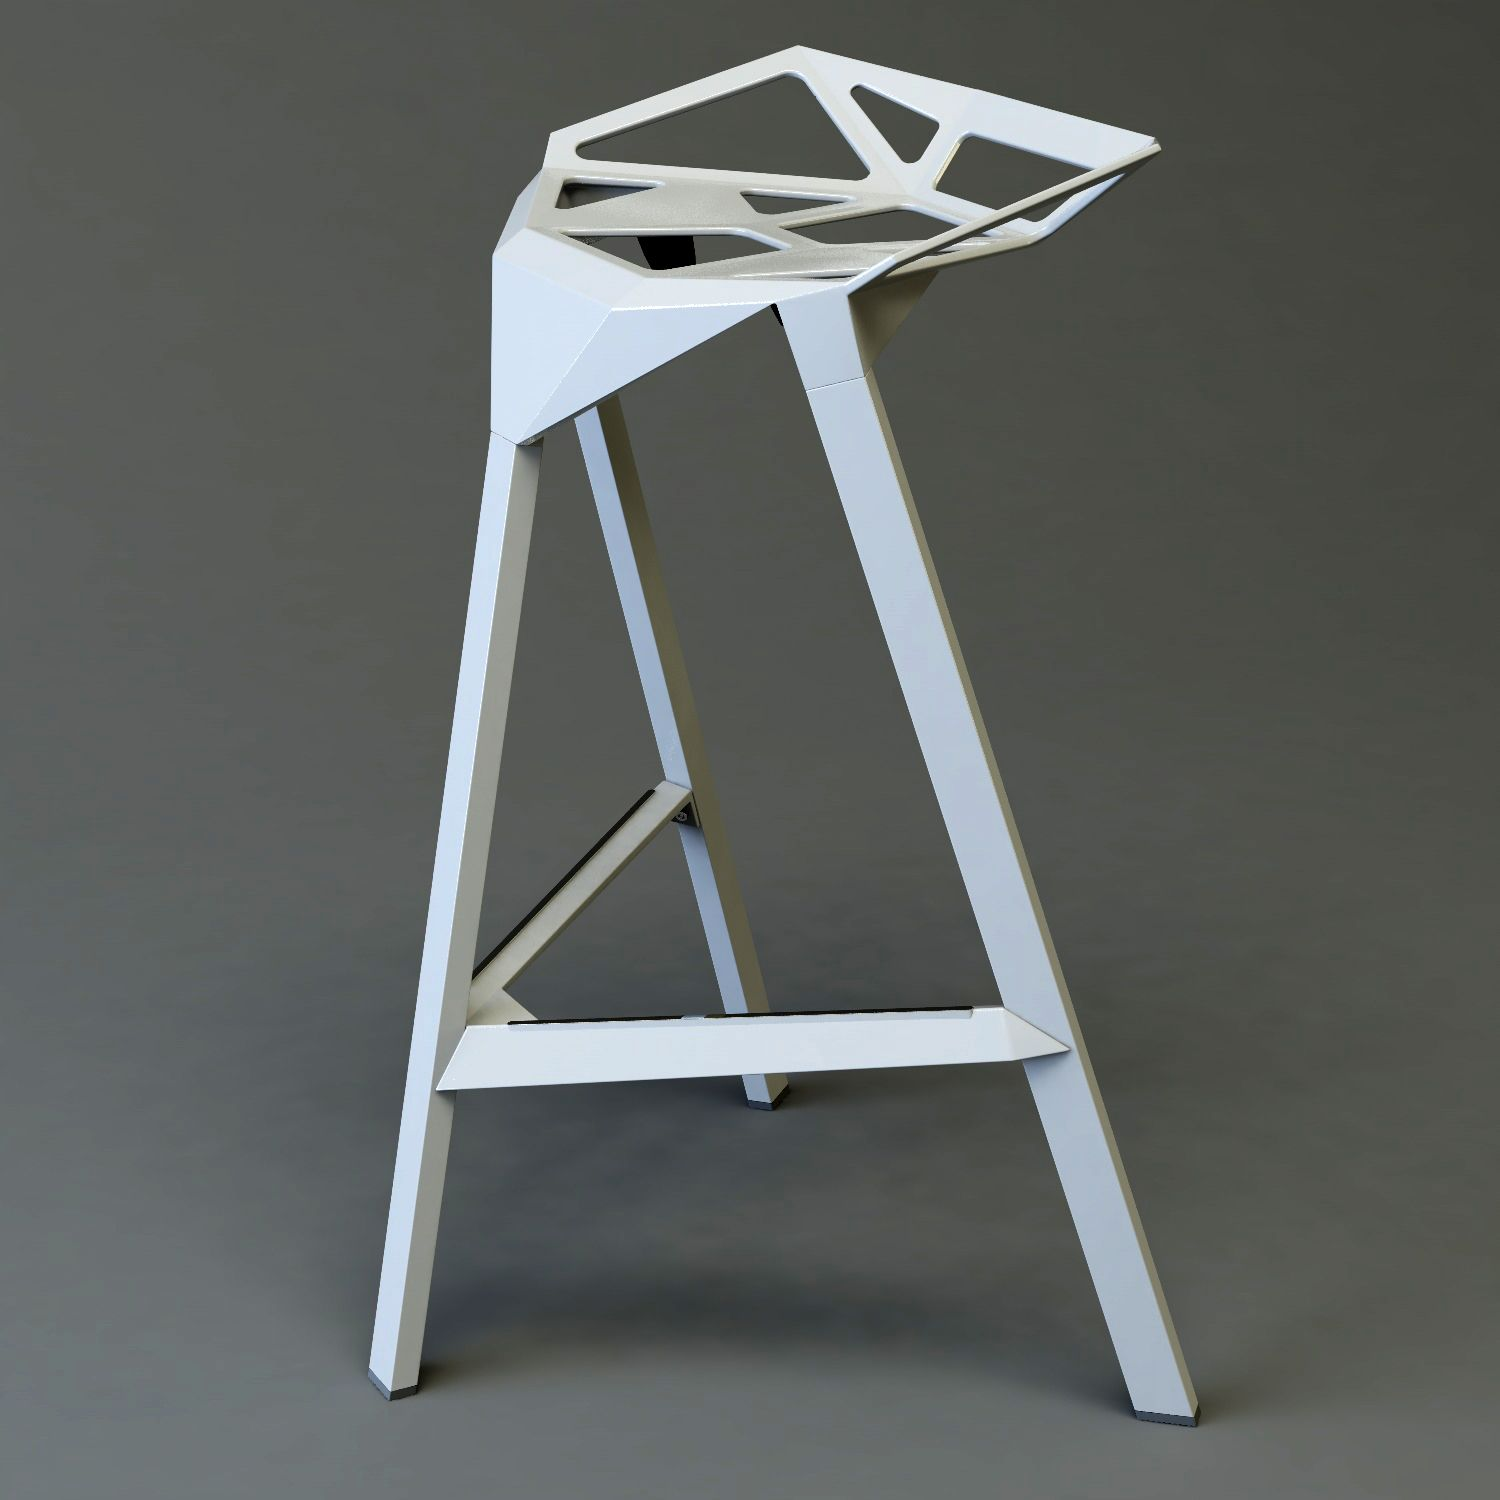 Konstantin Grcic Stool one | shaped materials | Pinterest | Stools ...